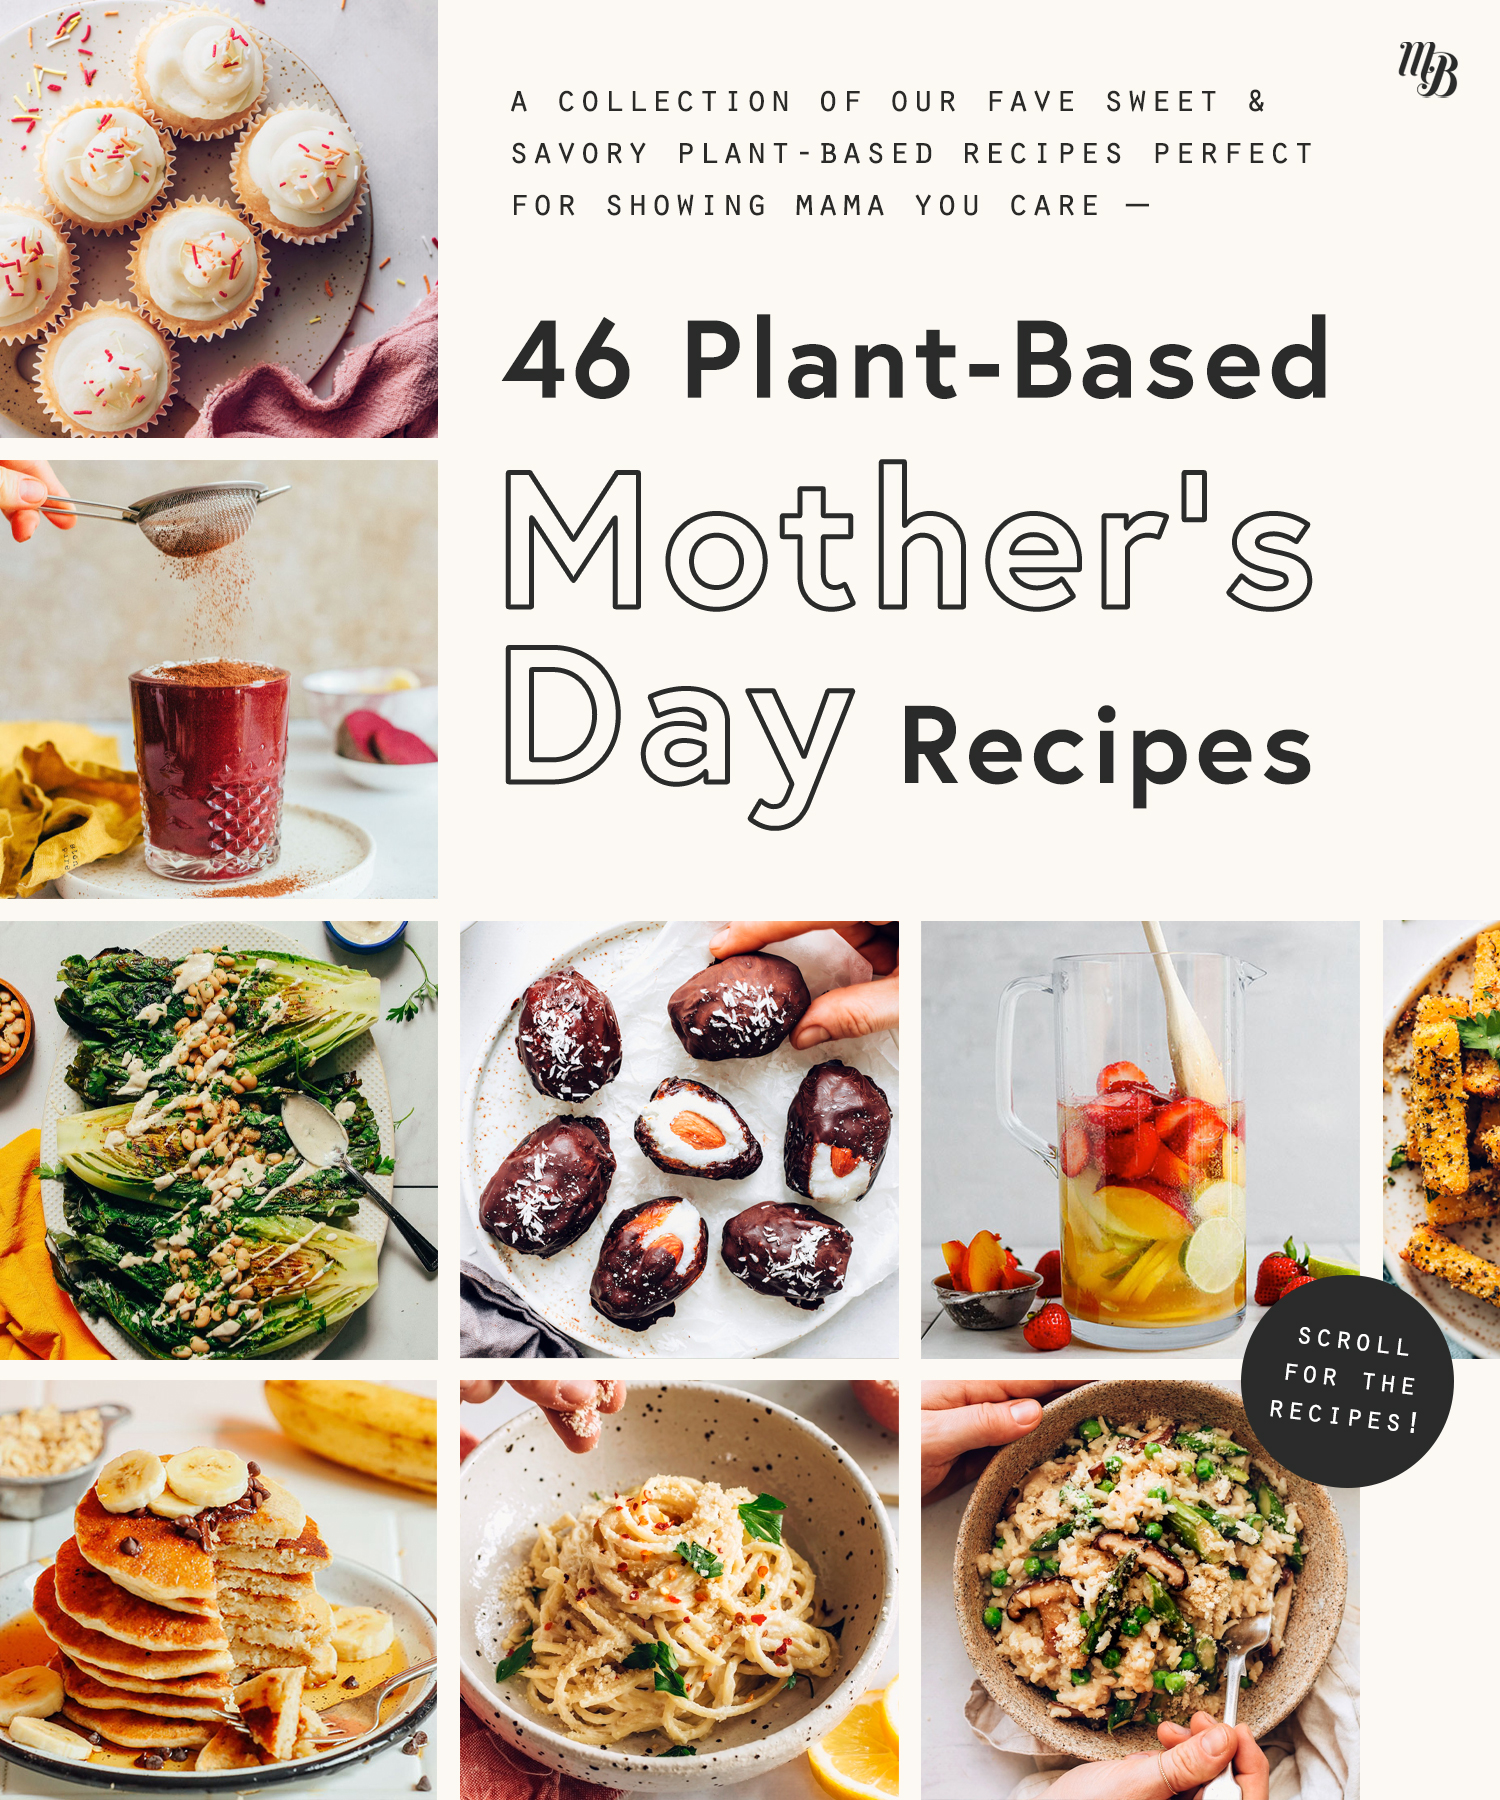 Assortment of plant-based mother's day recipes